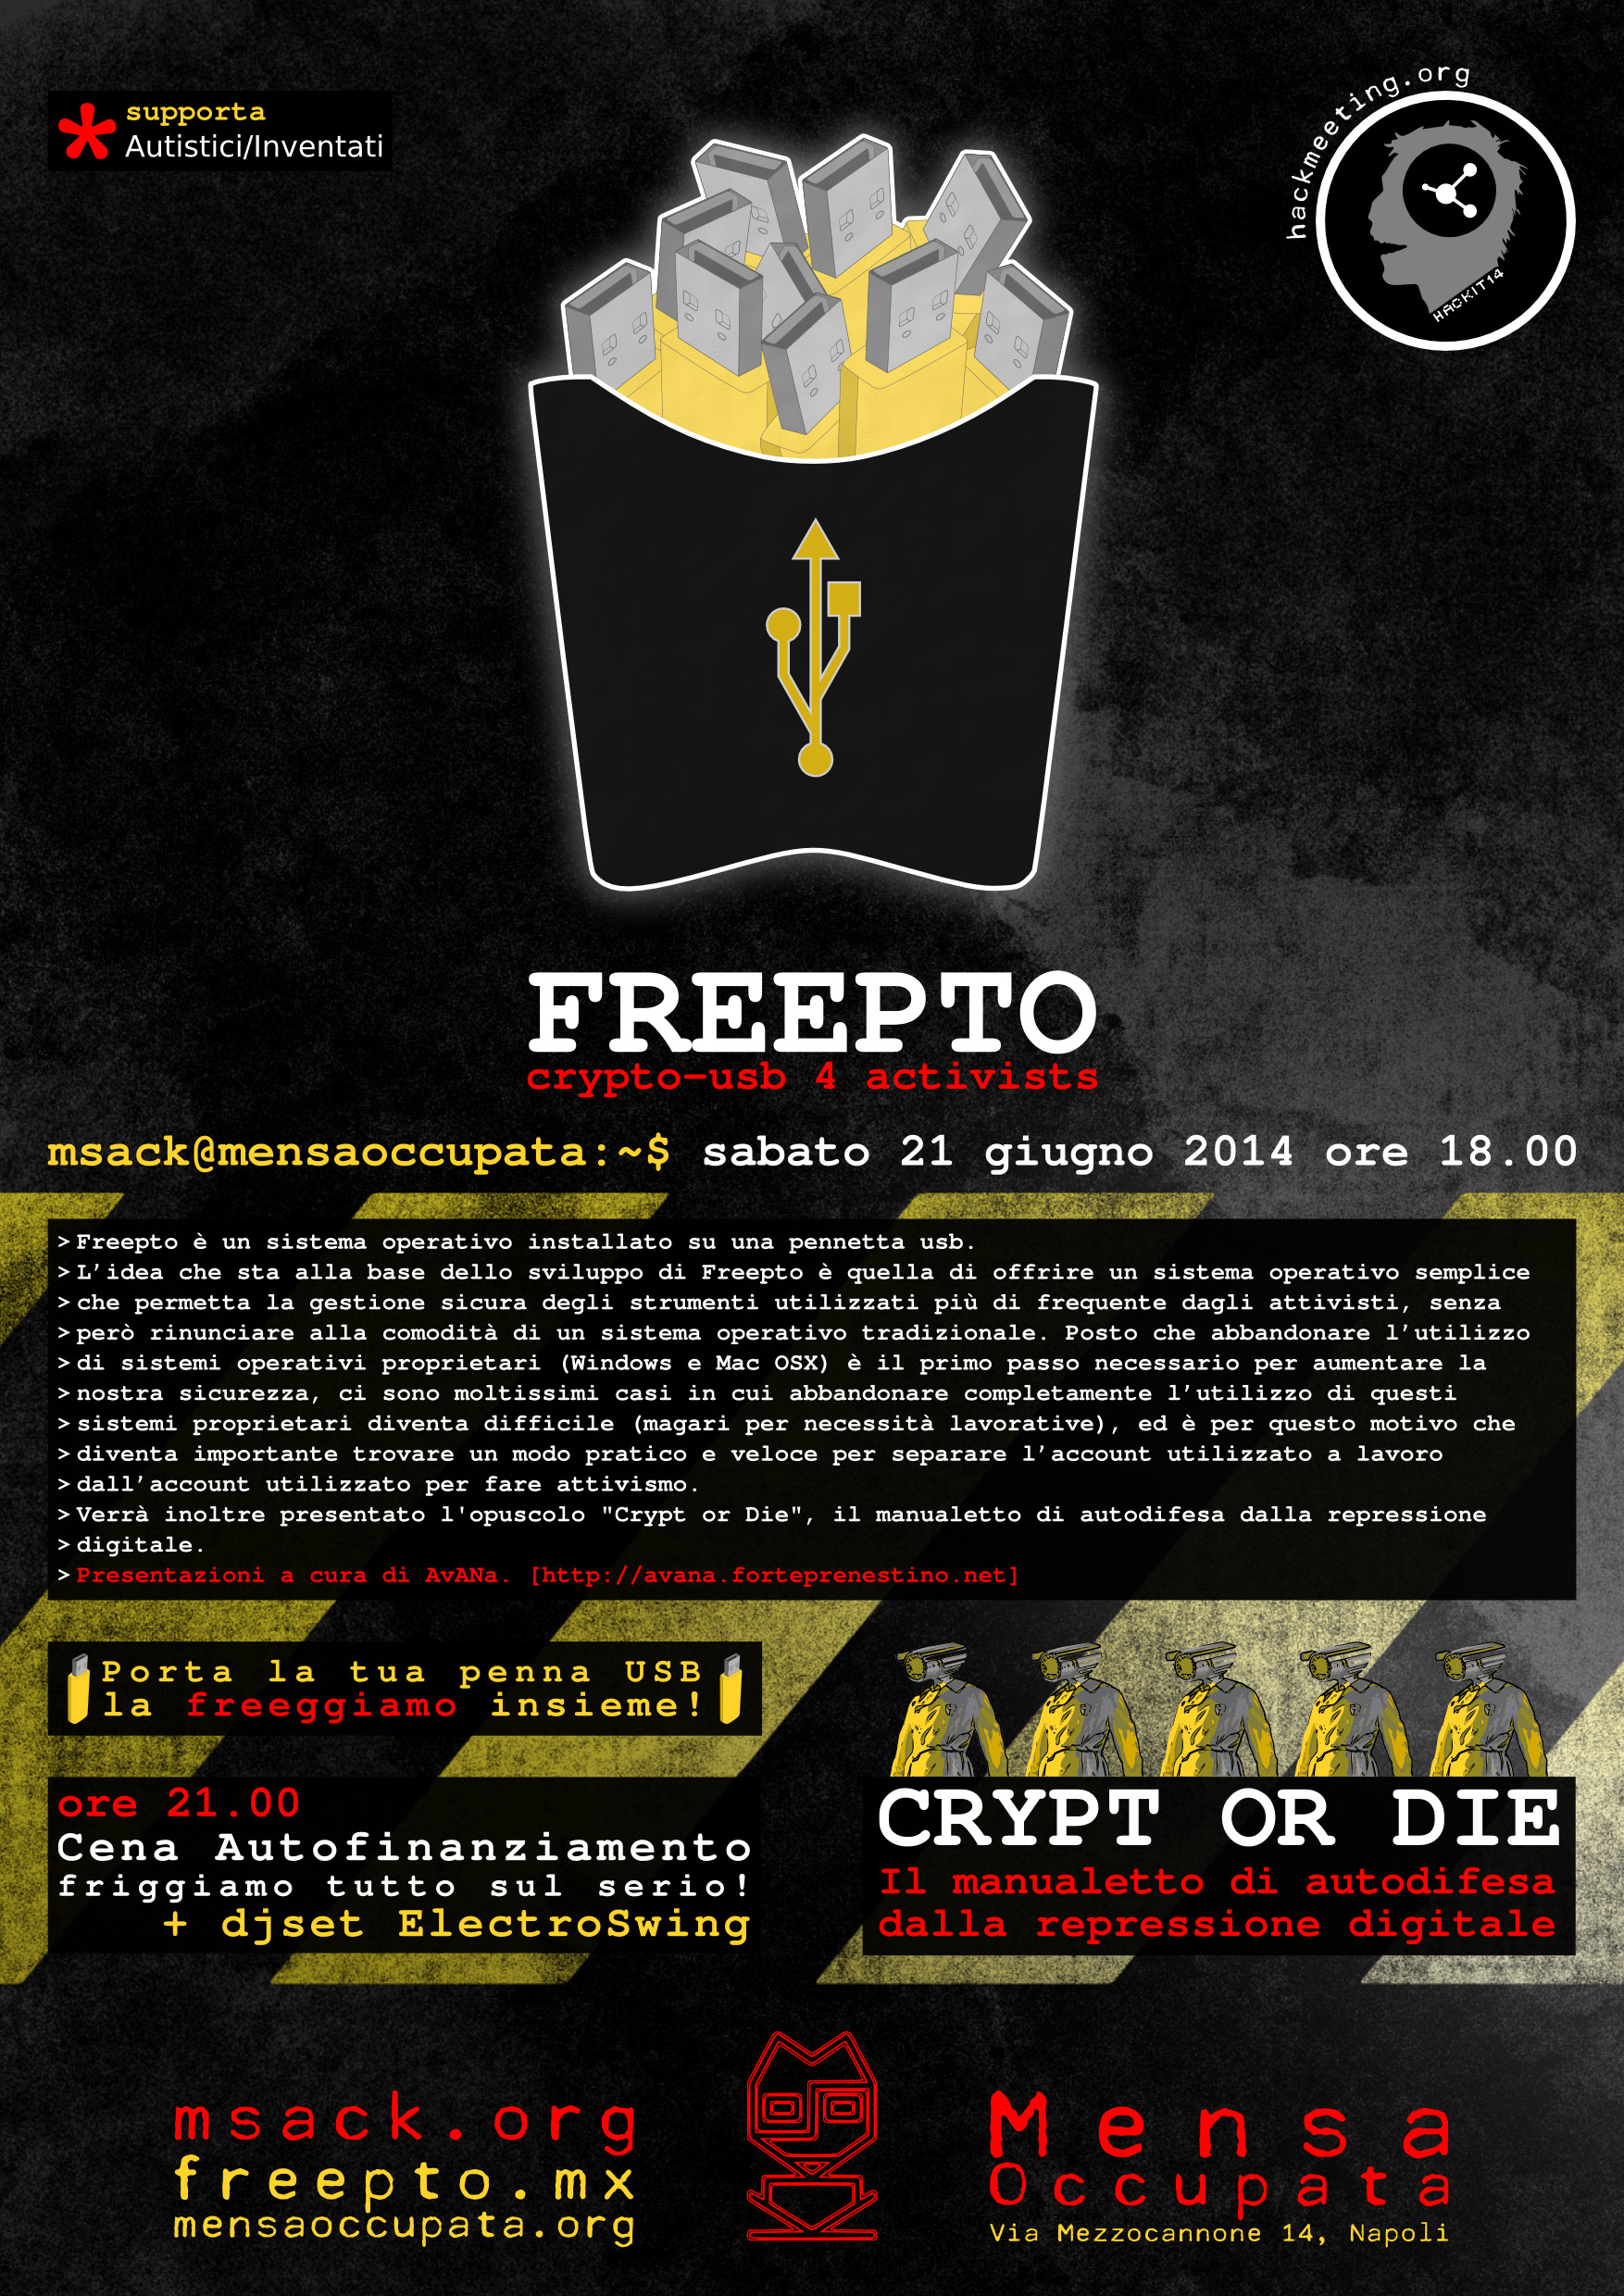 Freepto: cryptousb 4 activists